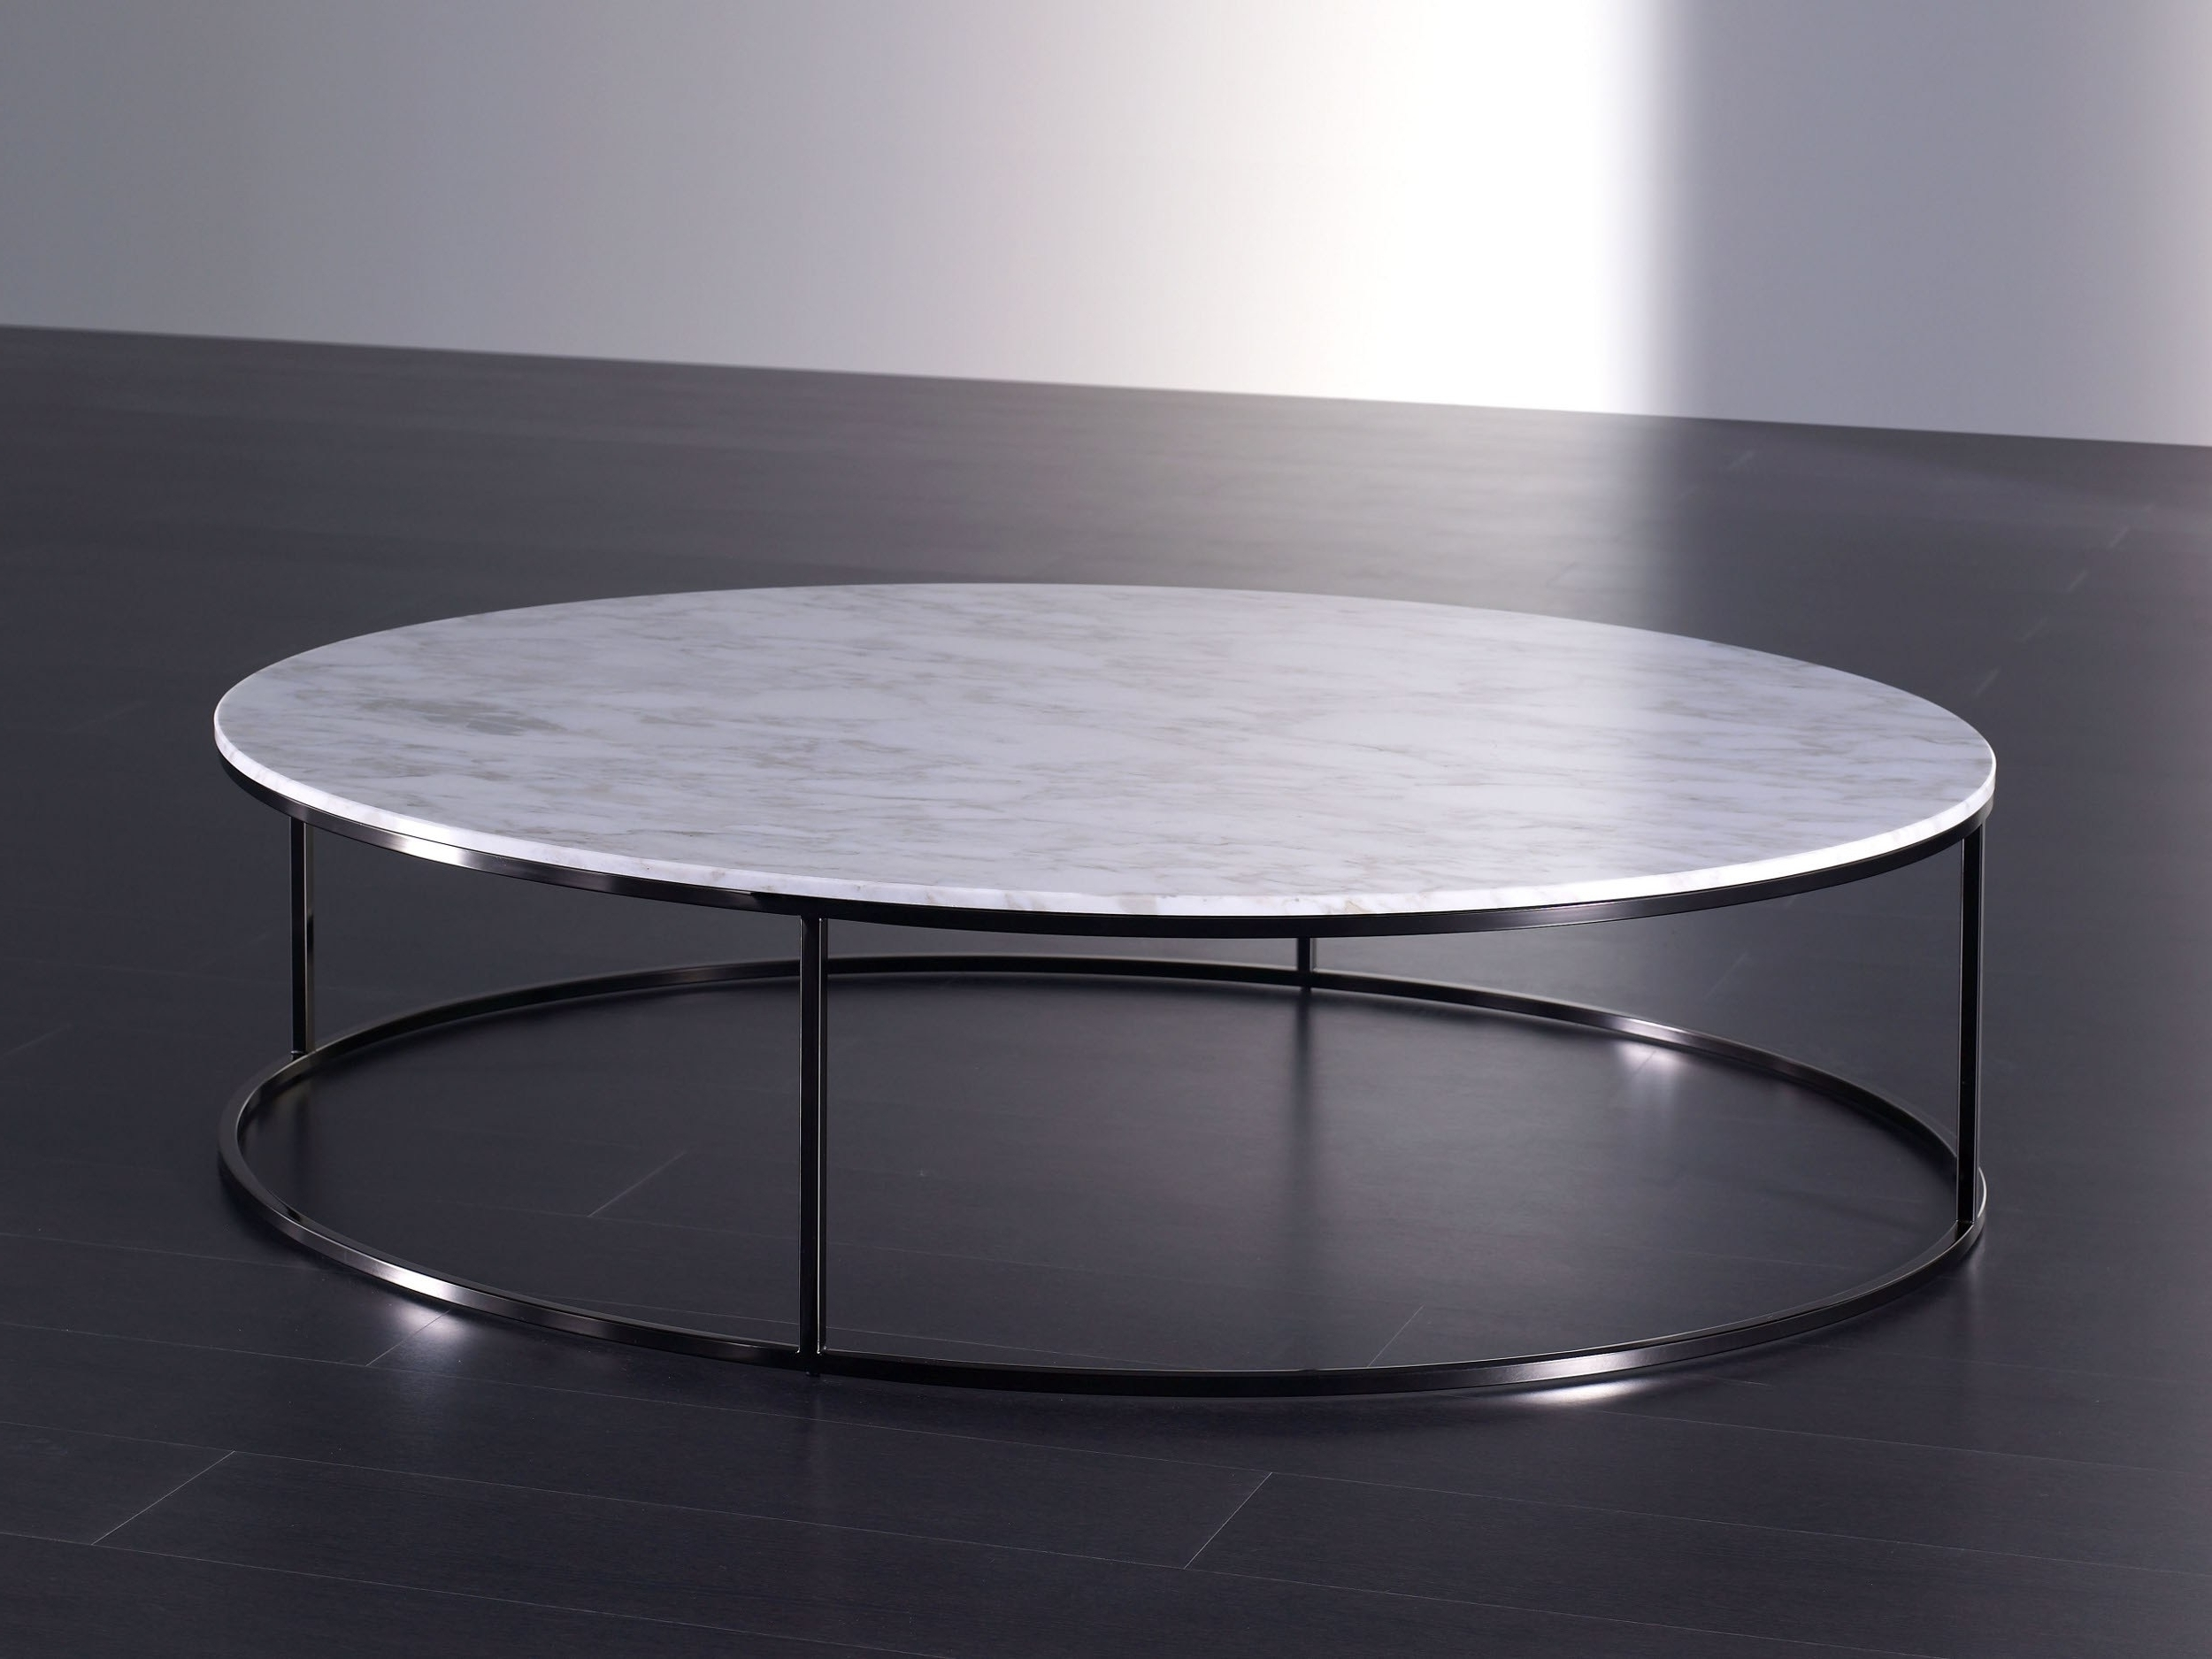 Most Recent Iron Marble Coffee Tables Regarding Choose The Best White Marble Coffee Table — The Home Redesign (View 14 of 20)